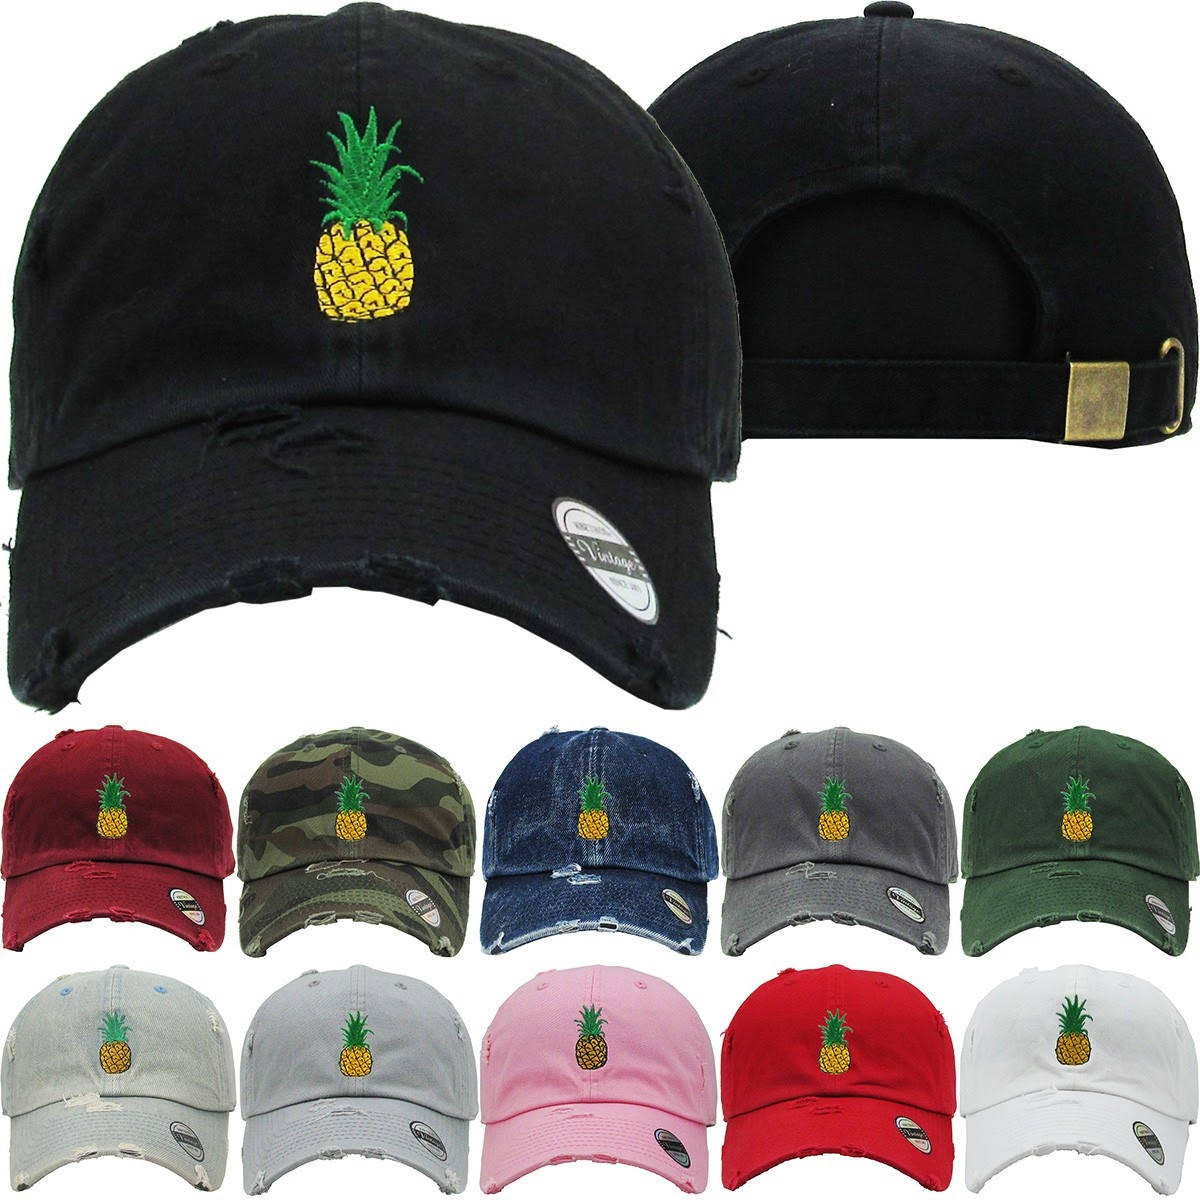 Pineapple Lemon Dad Hat Distressed Baseball Cap Free 1 Location Text ... a9a06323197